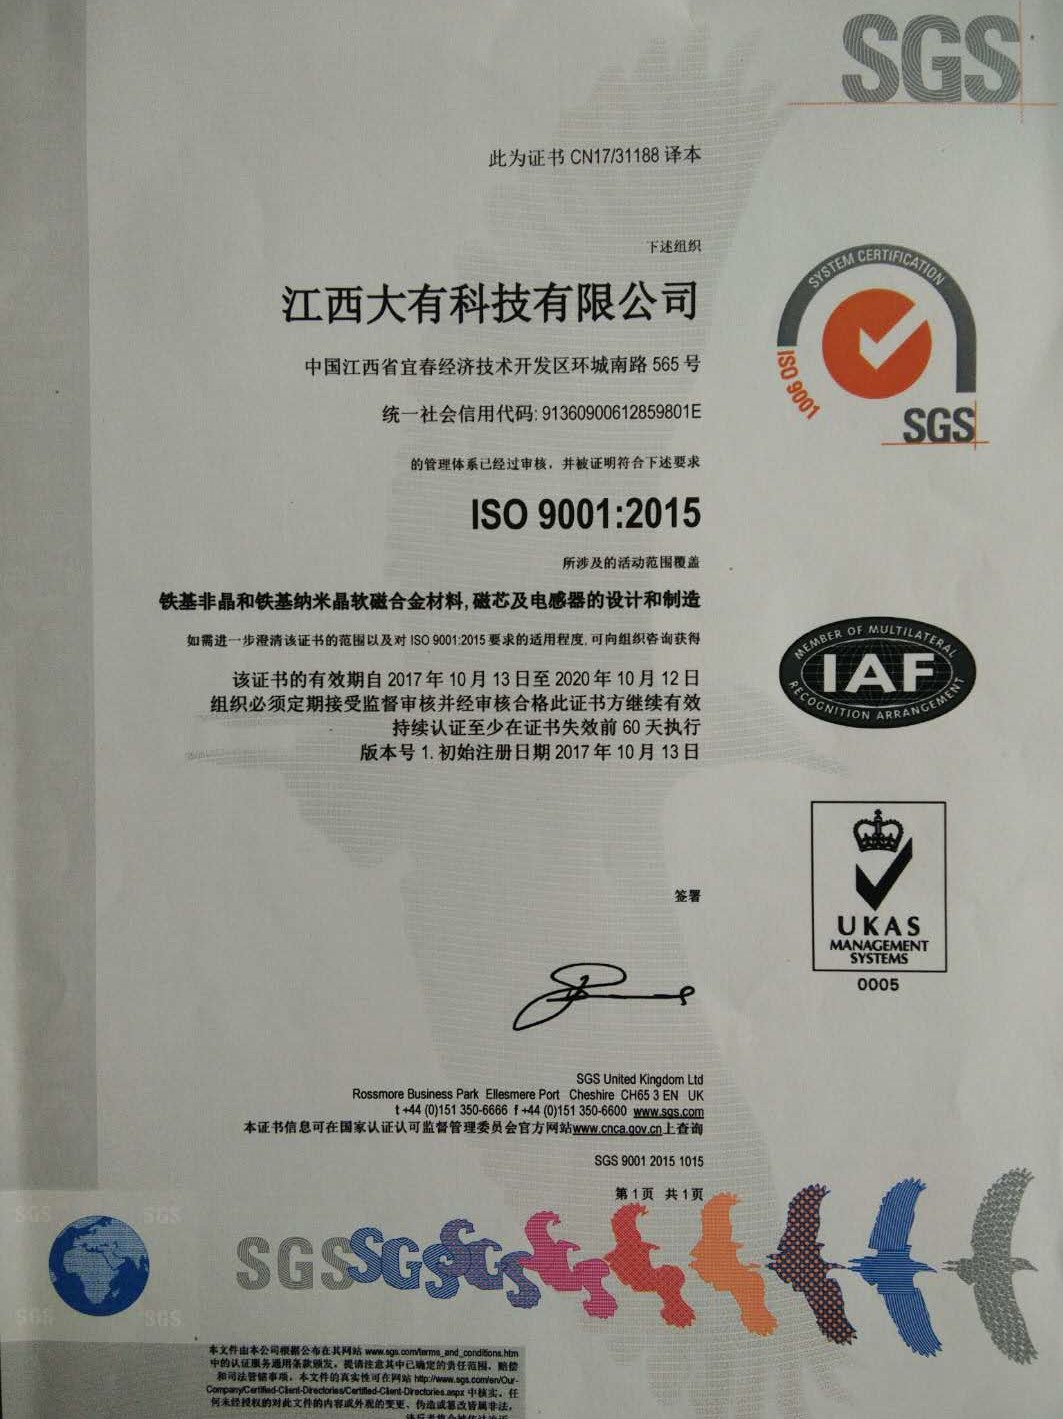 Certificate of quality management system certification